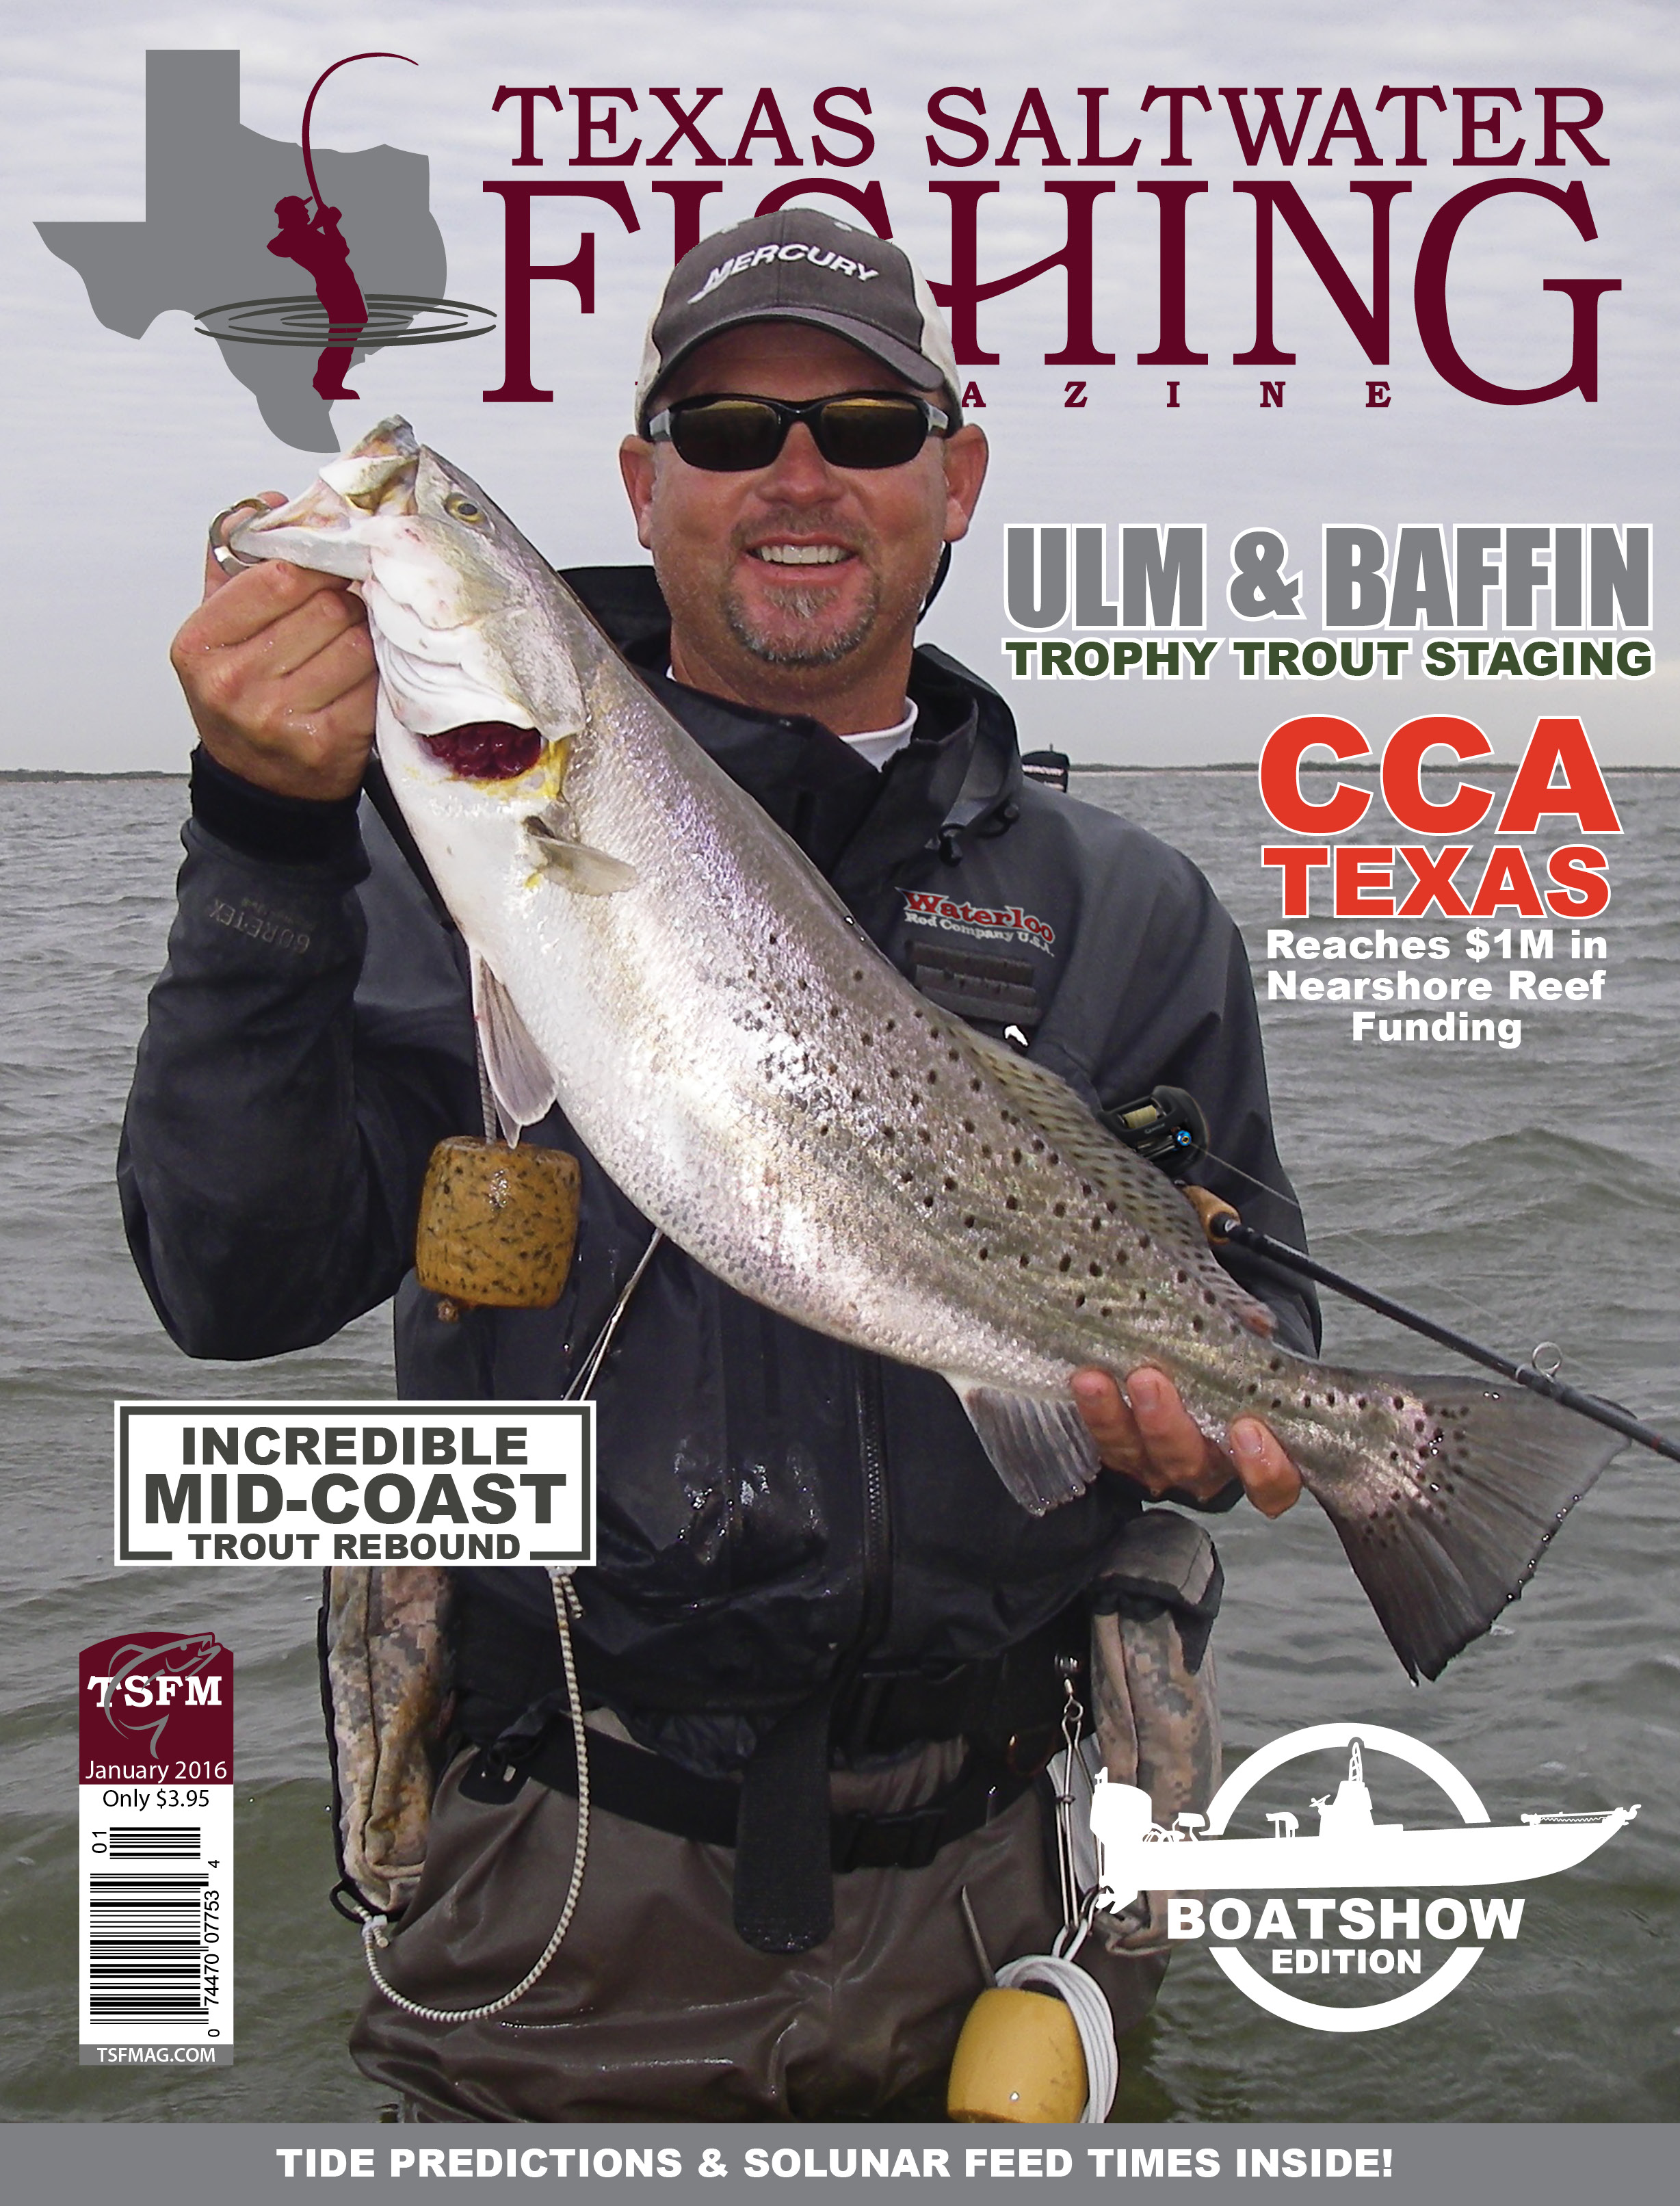 Texas saltwater fishing magazine january 2016 for Texas saltwater fishing magazine